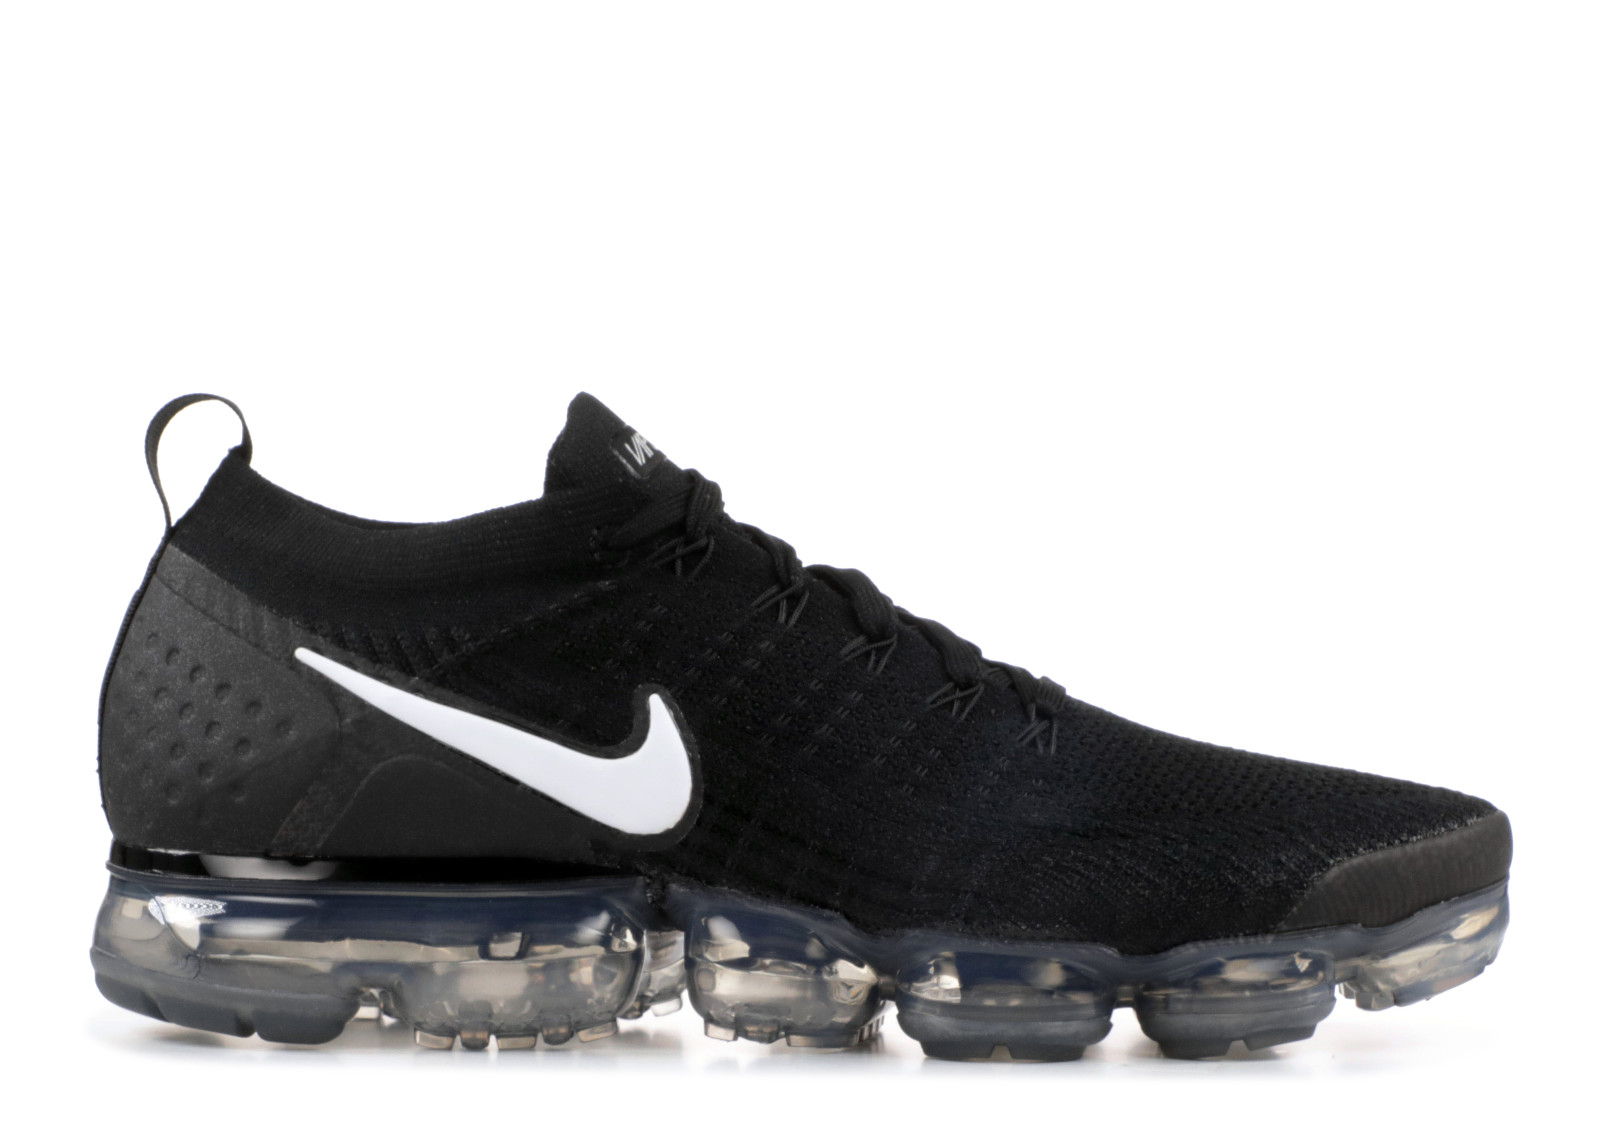 195236dd8dd658 Nike Air Vapormax Flyknit 2 Black-White-Dark Grey. Previous Product